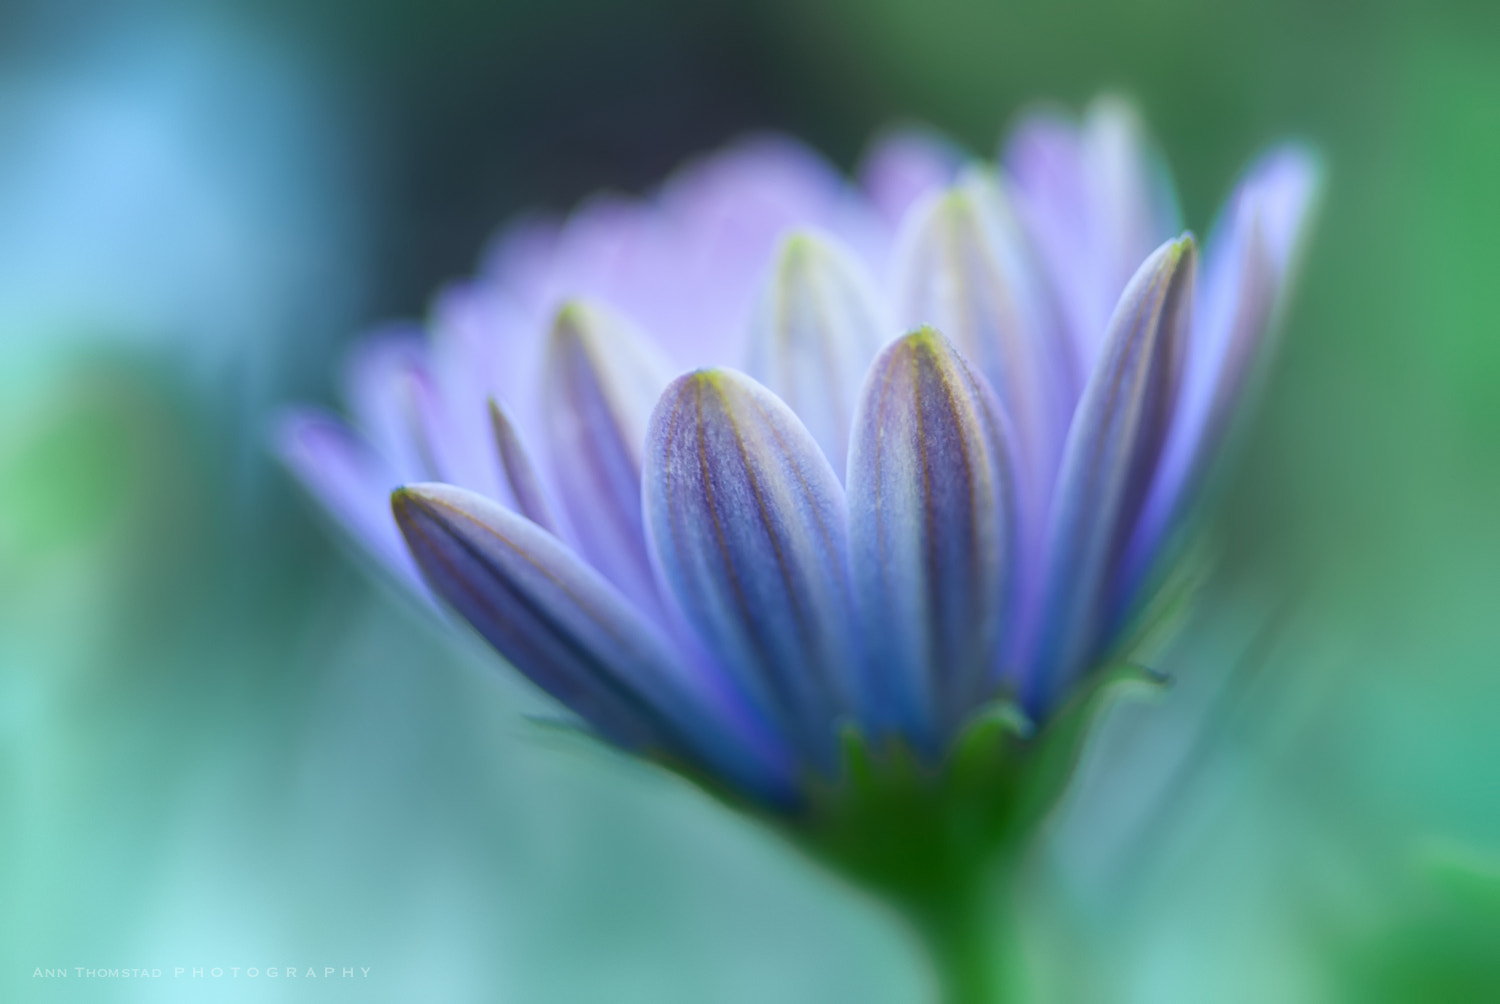 Photograph Blue Petals by Ann Thomstad on 500px